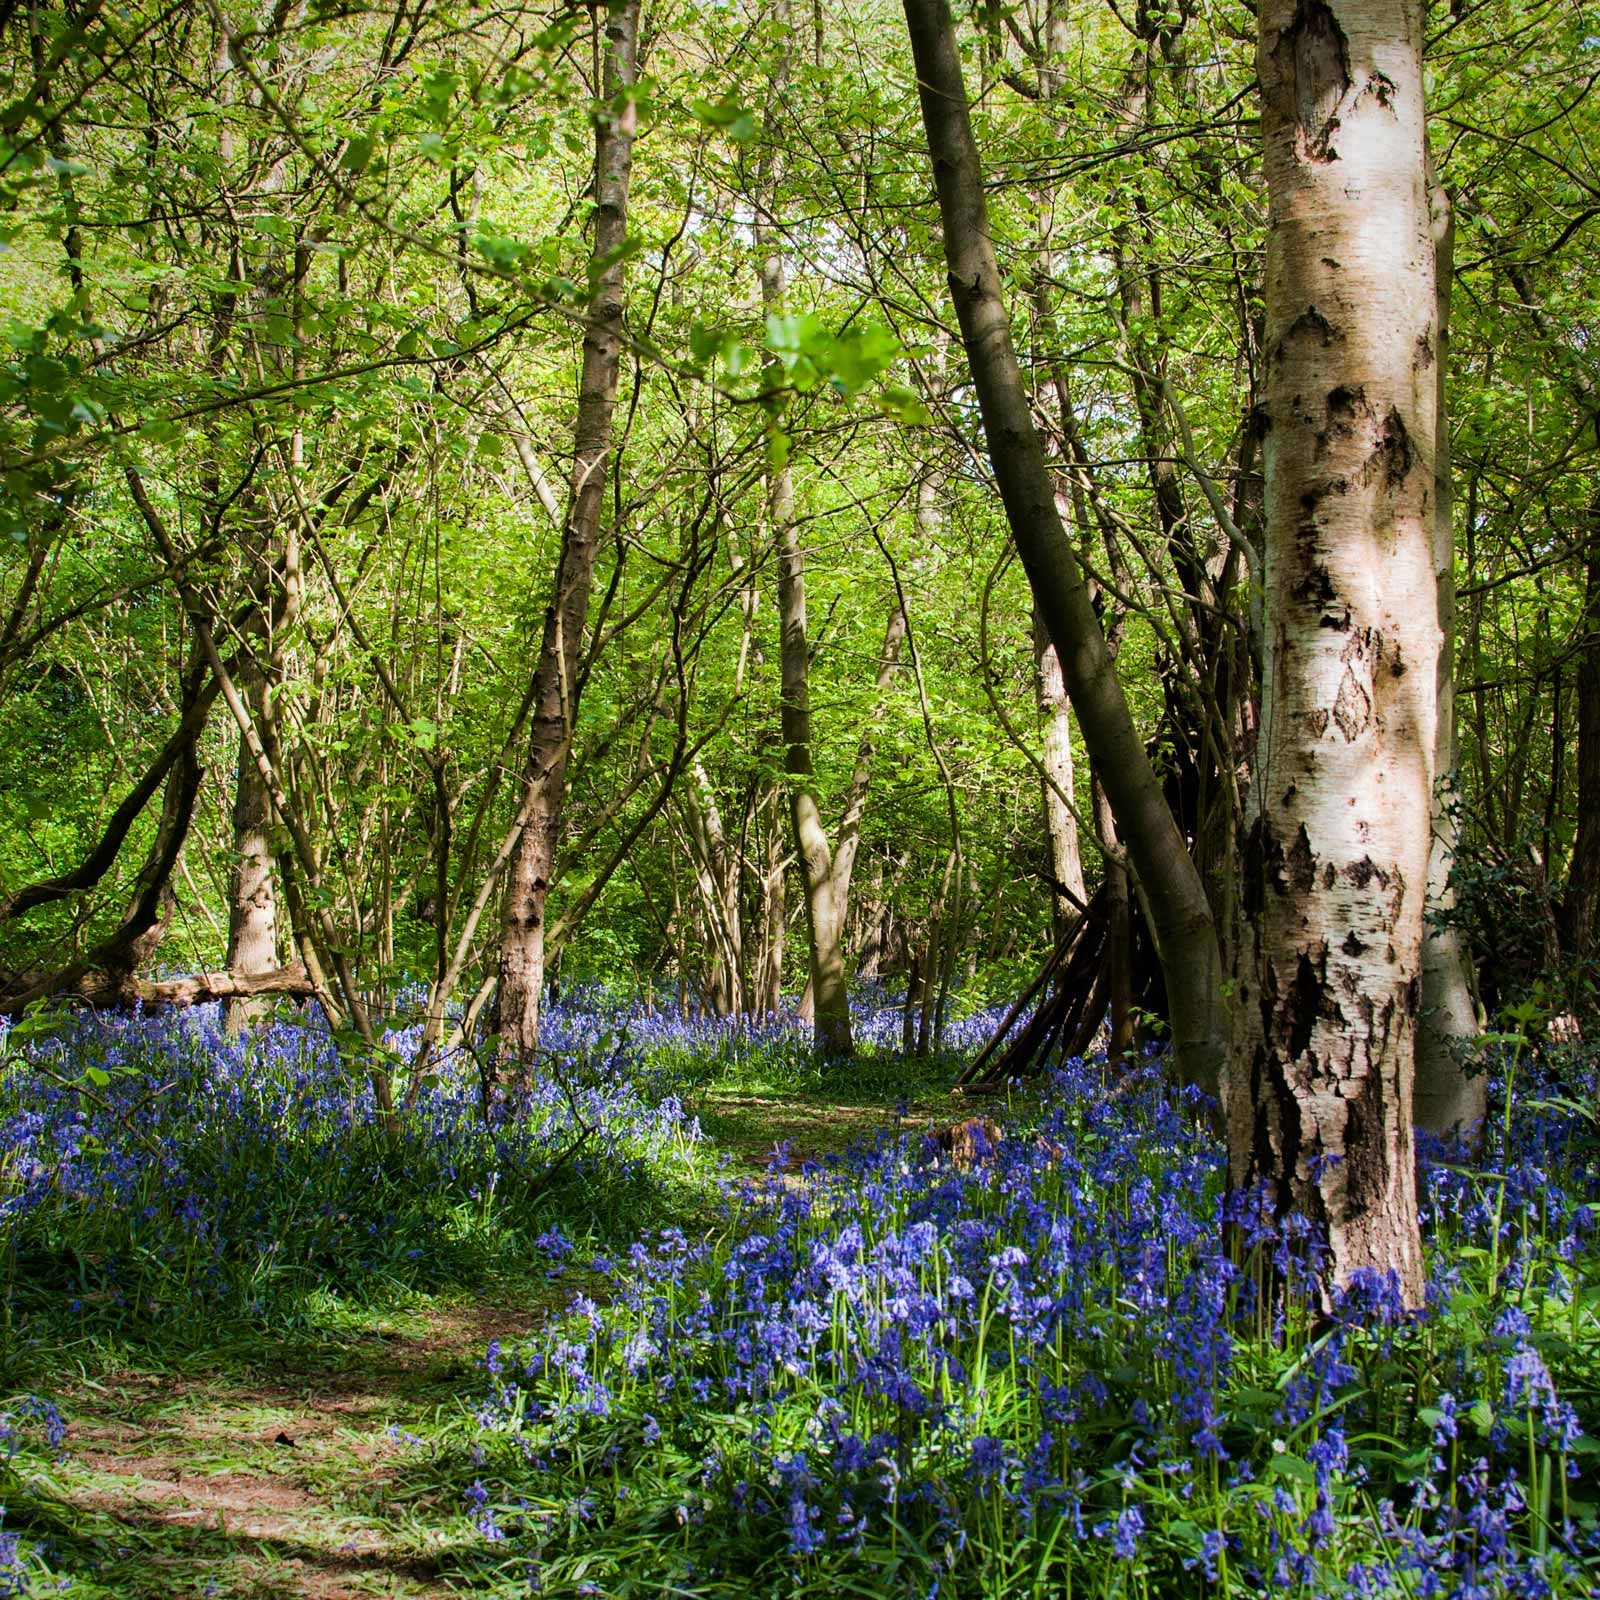 Carpet of fragrant bluebells in English woodland